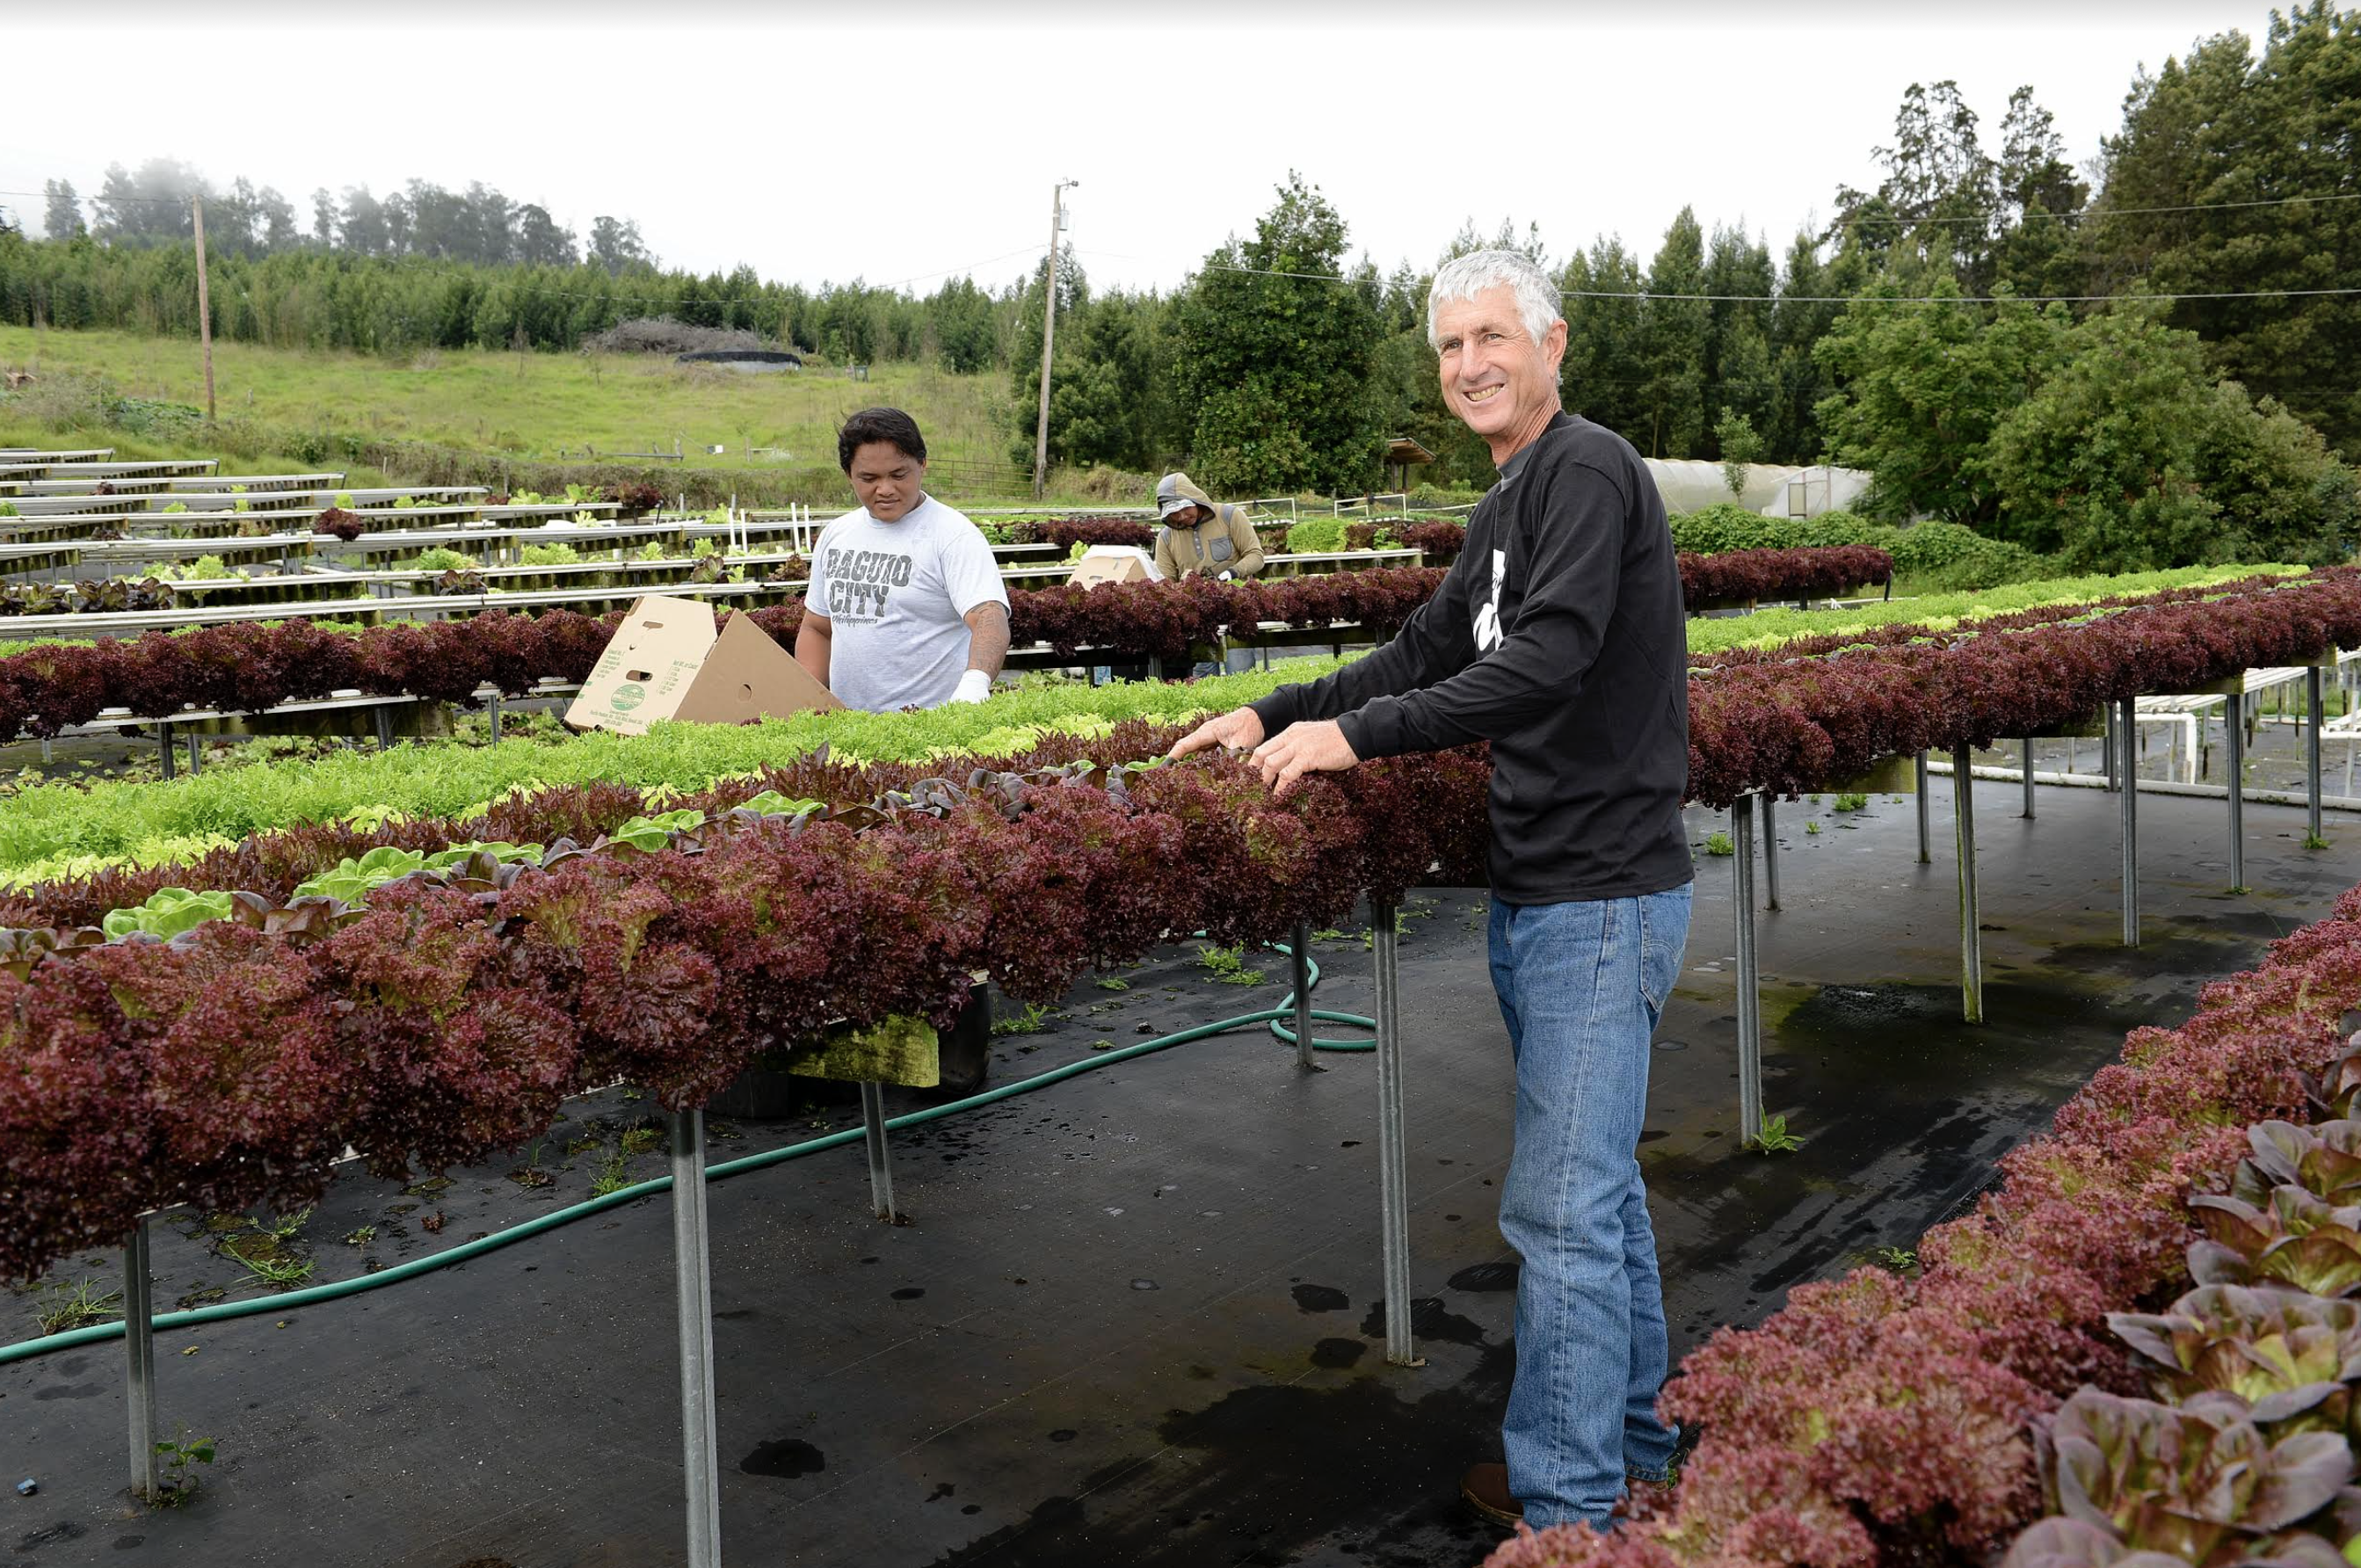 MCFB's Farm Product Purchase Program Extended